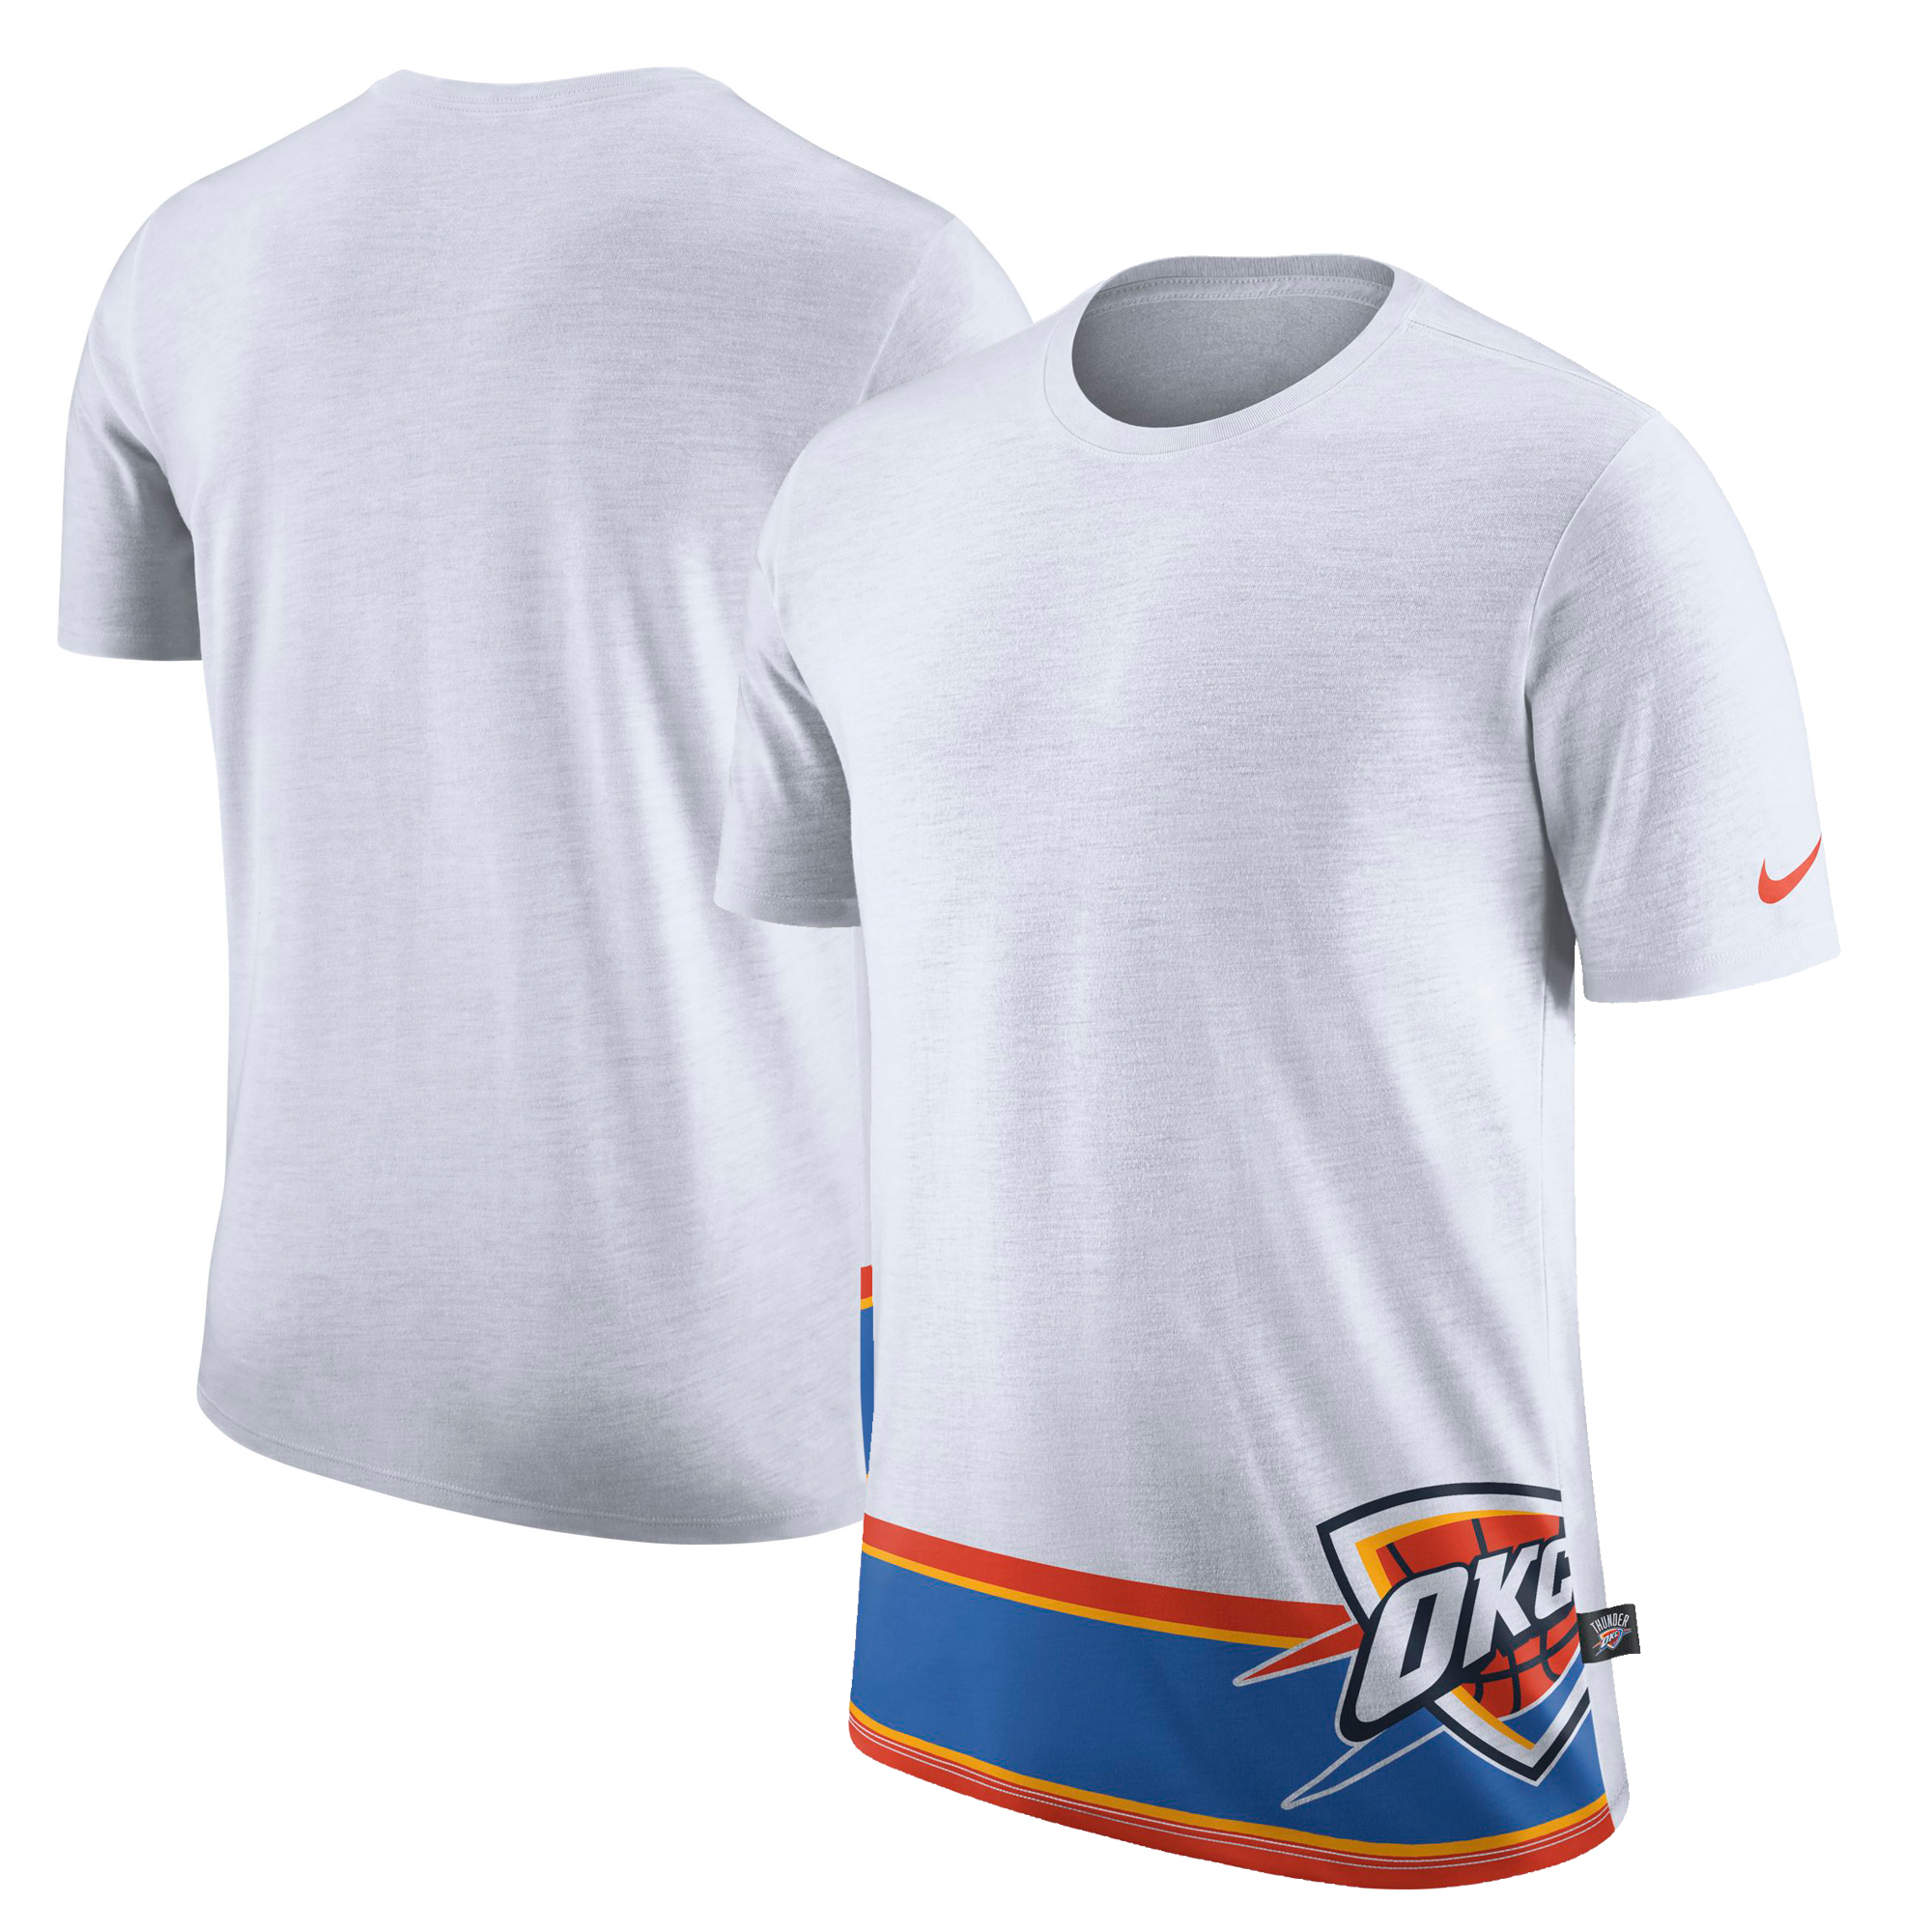 Oklahoma City Thunder Nike DNA T-Shirt - White